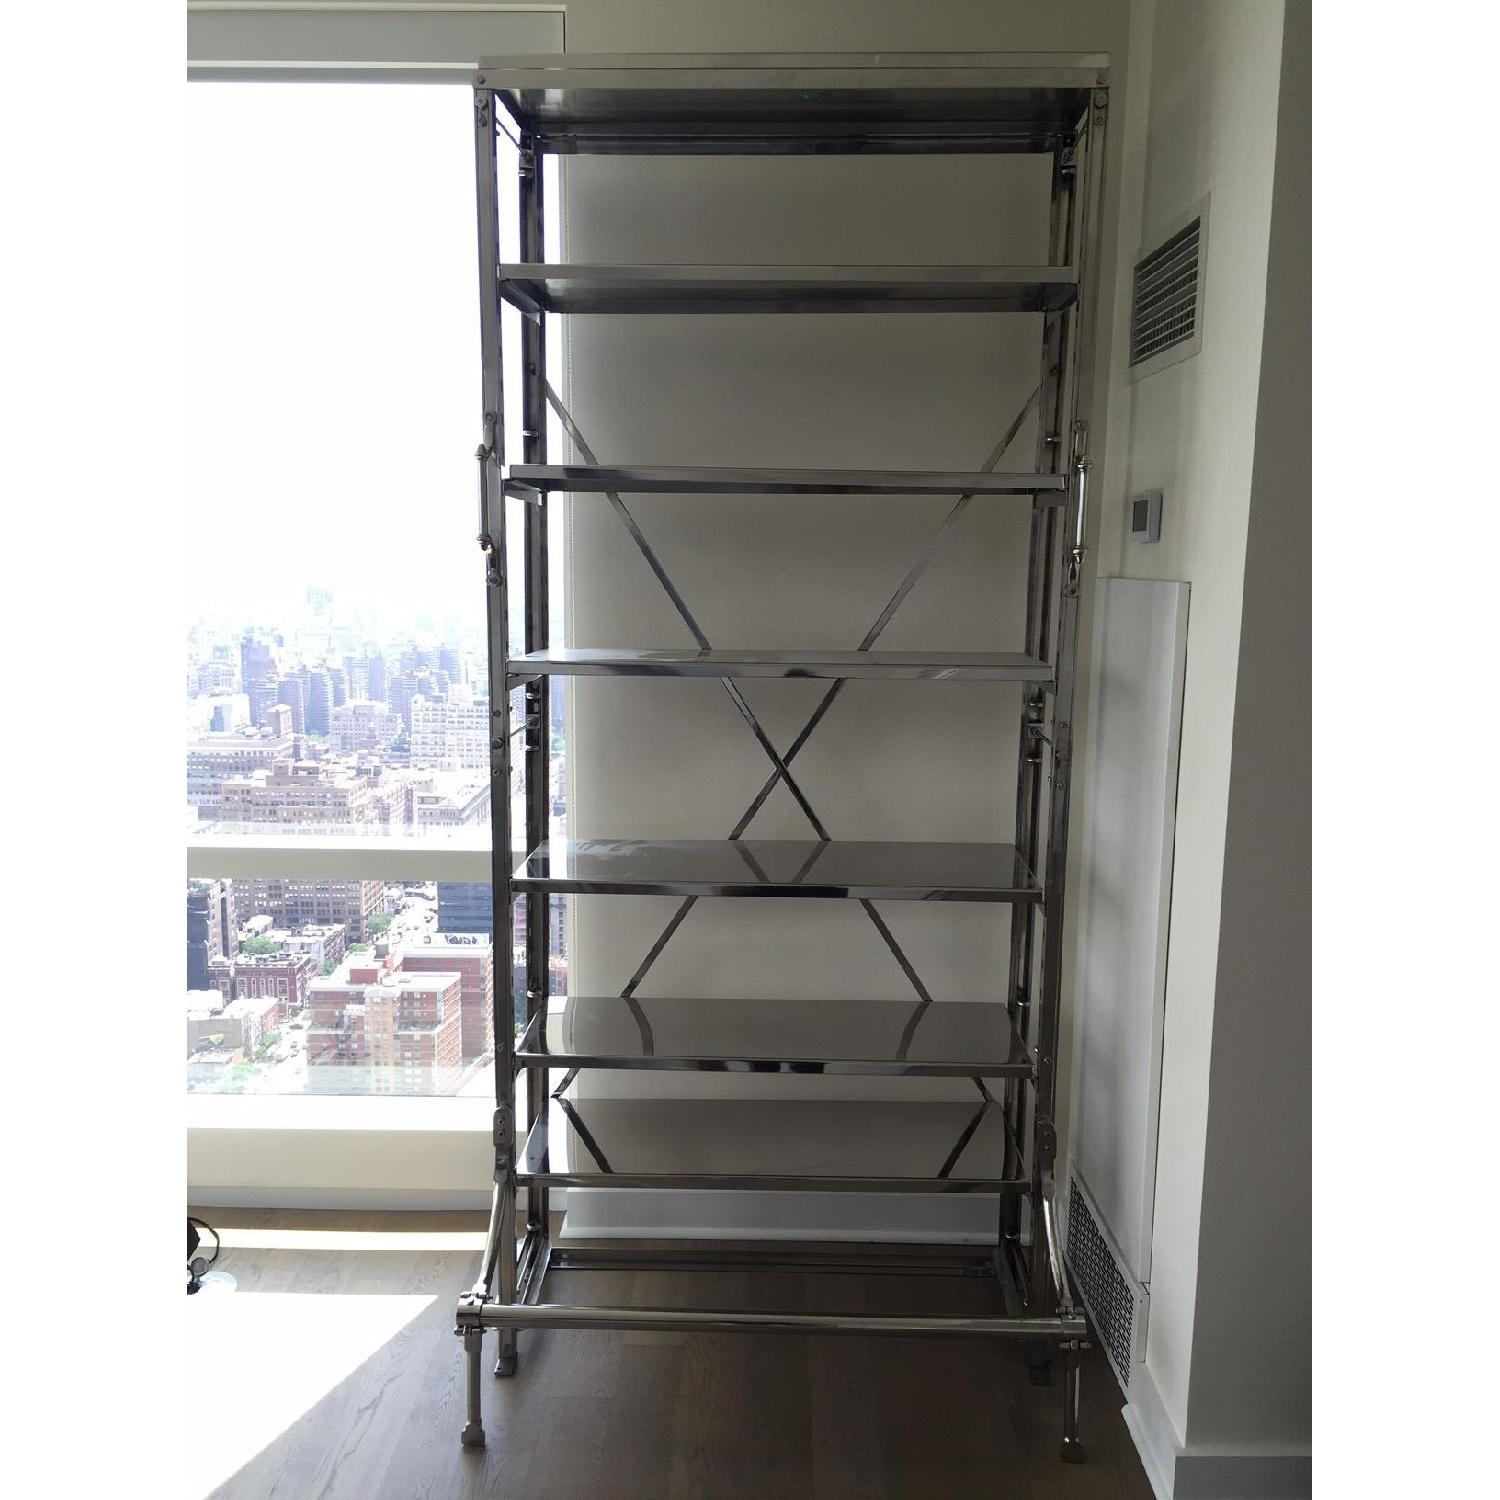 Restoration Hardware French Library Single Shelving in Polished Stainless Steel - image-1